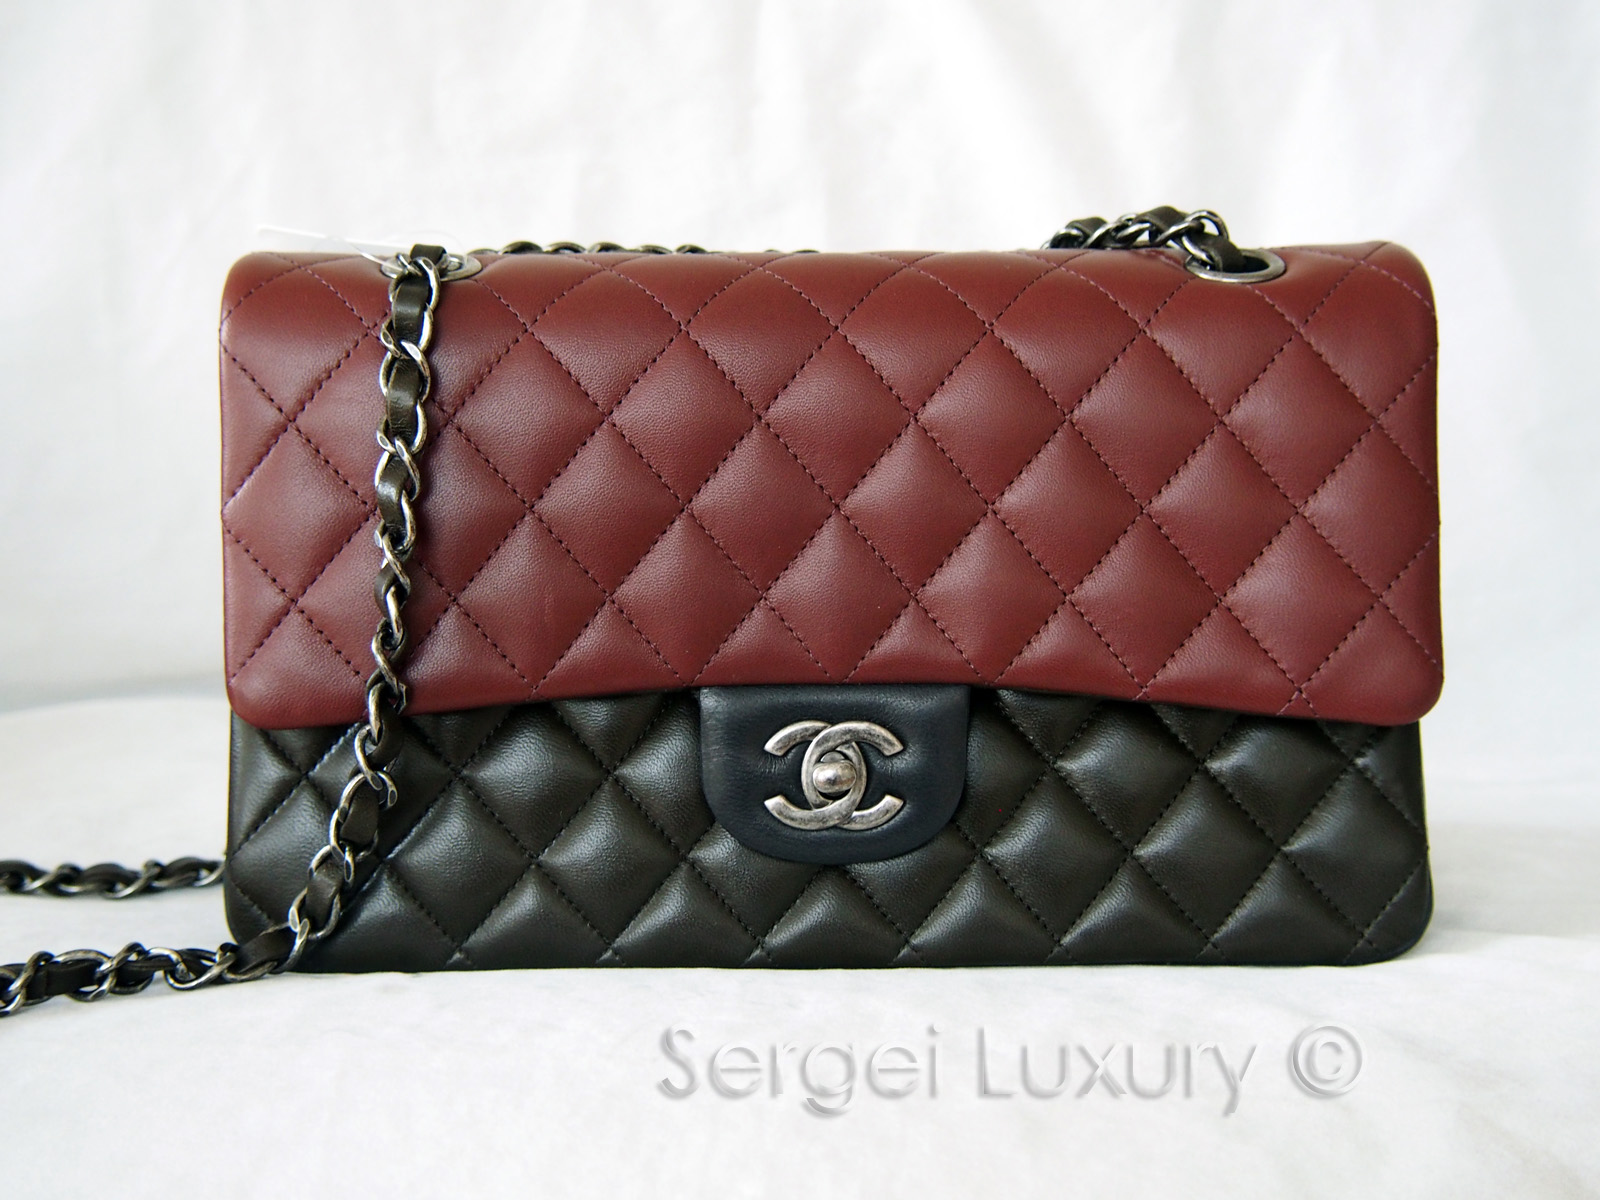 cceae4263b566a NEW Authentic CHANEL Tricolor Edimbourg Medium Classic Flap Leather ...